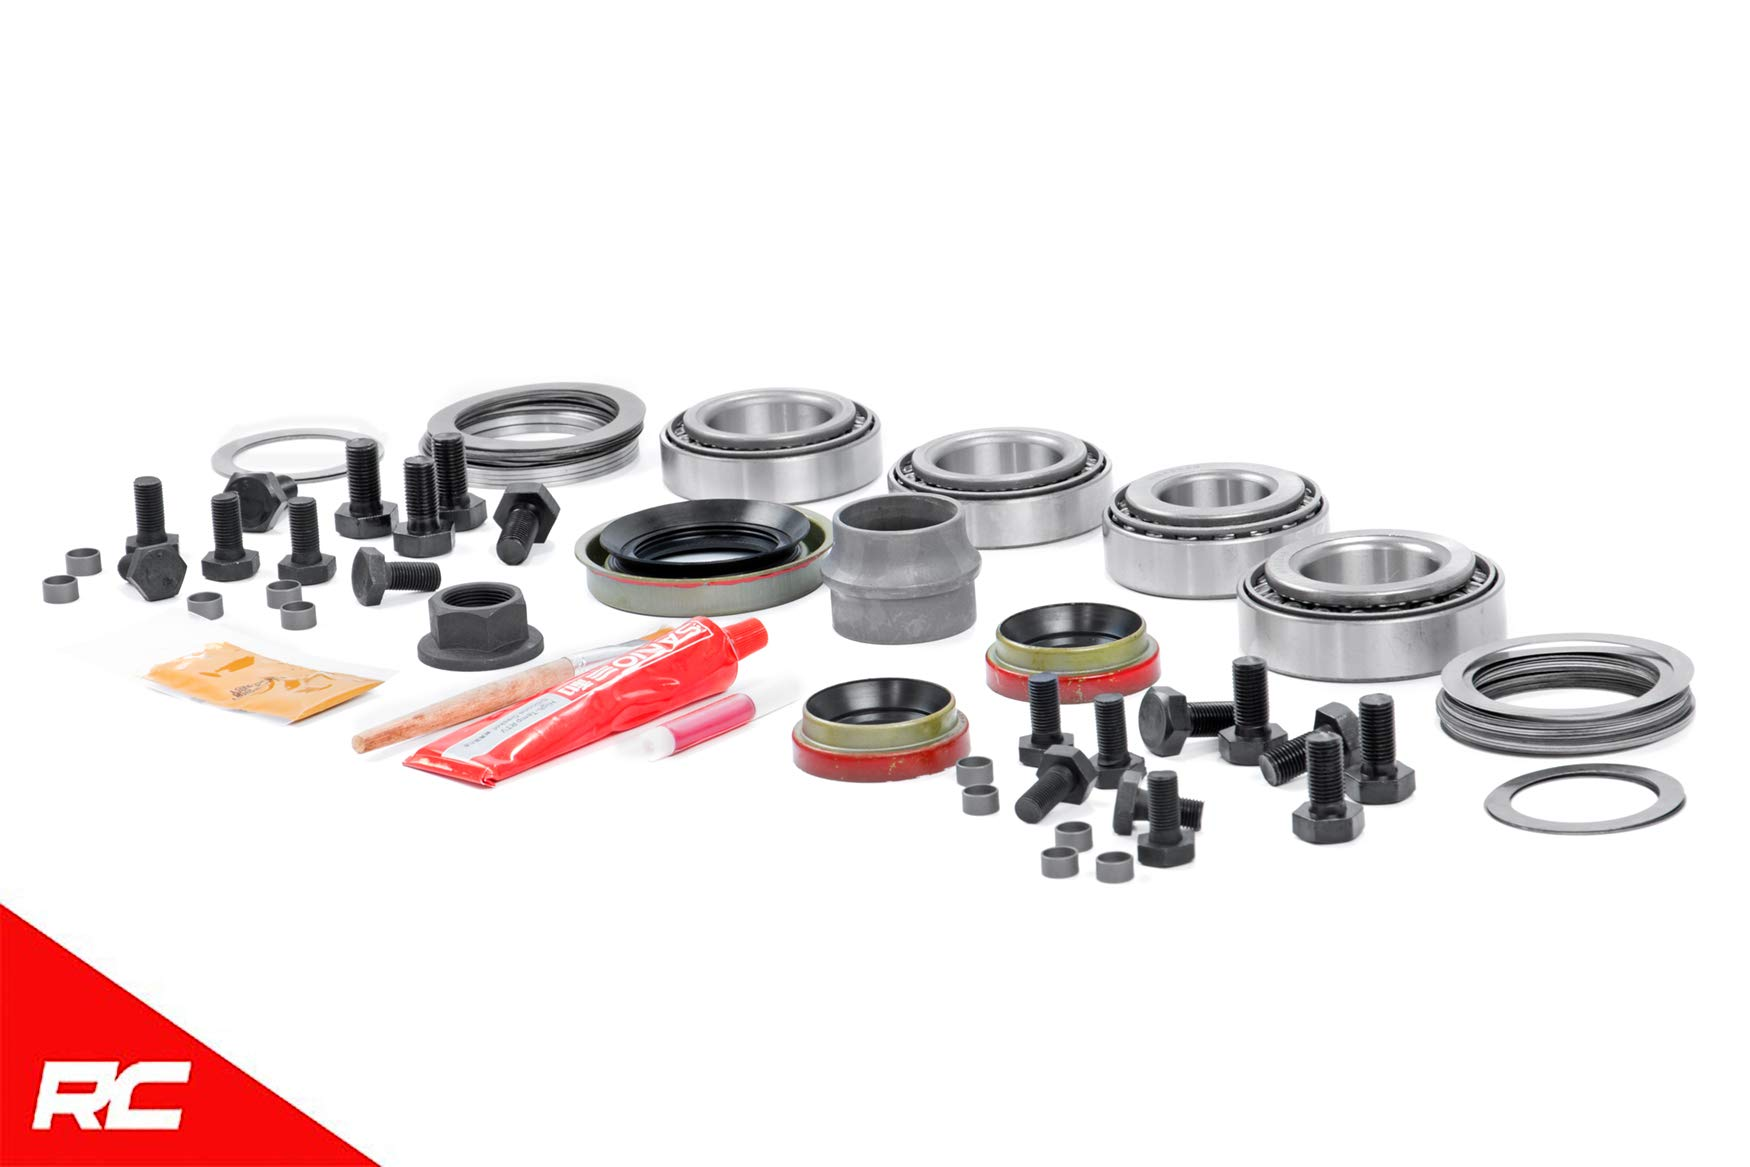 Rough Country Dana 30 Gear Master Install Kit Compatible w/ 1987-1995 Jeep Wrangler YJ 84-01 Cherokee XJ 30 HP 530000356